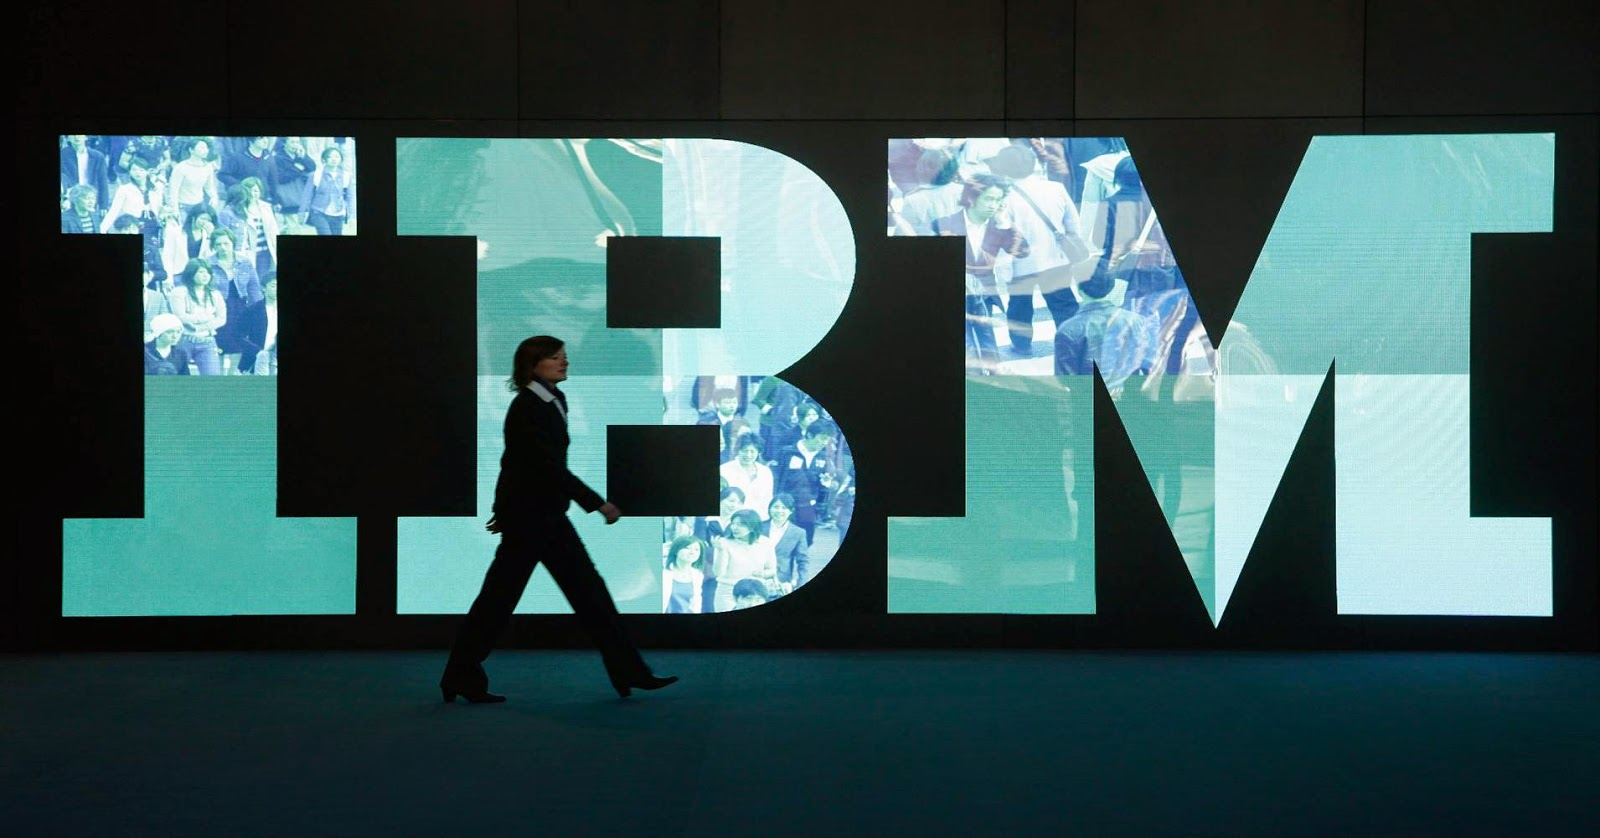 Logo da empresa IBM: International Business Machines